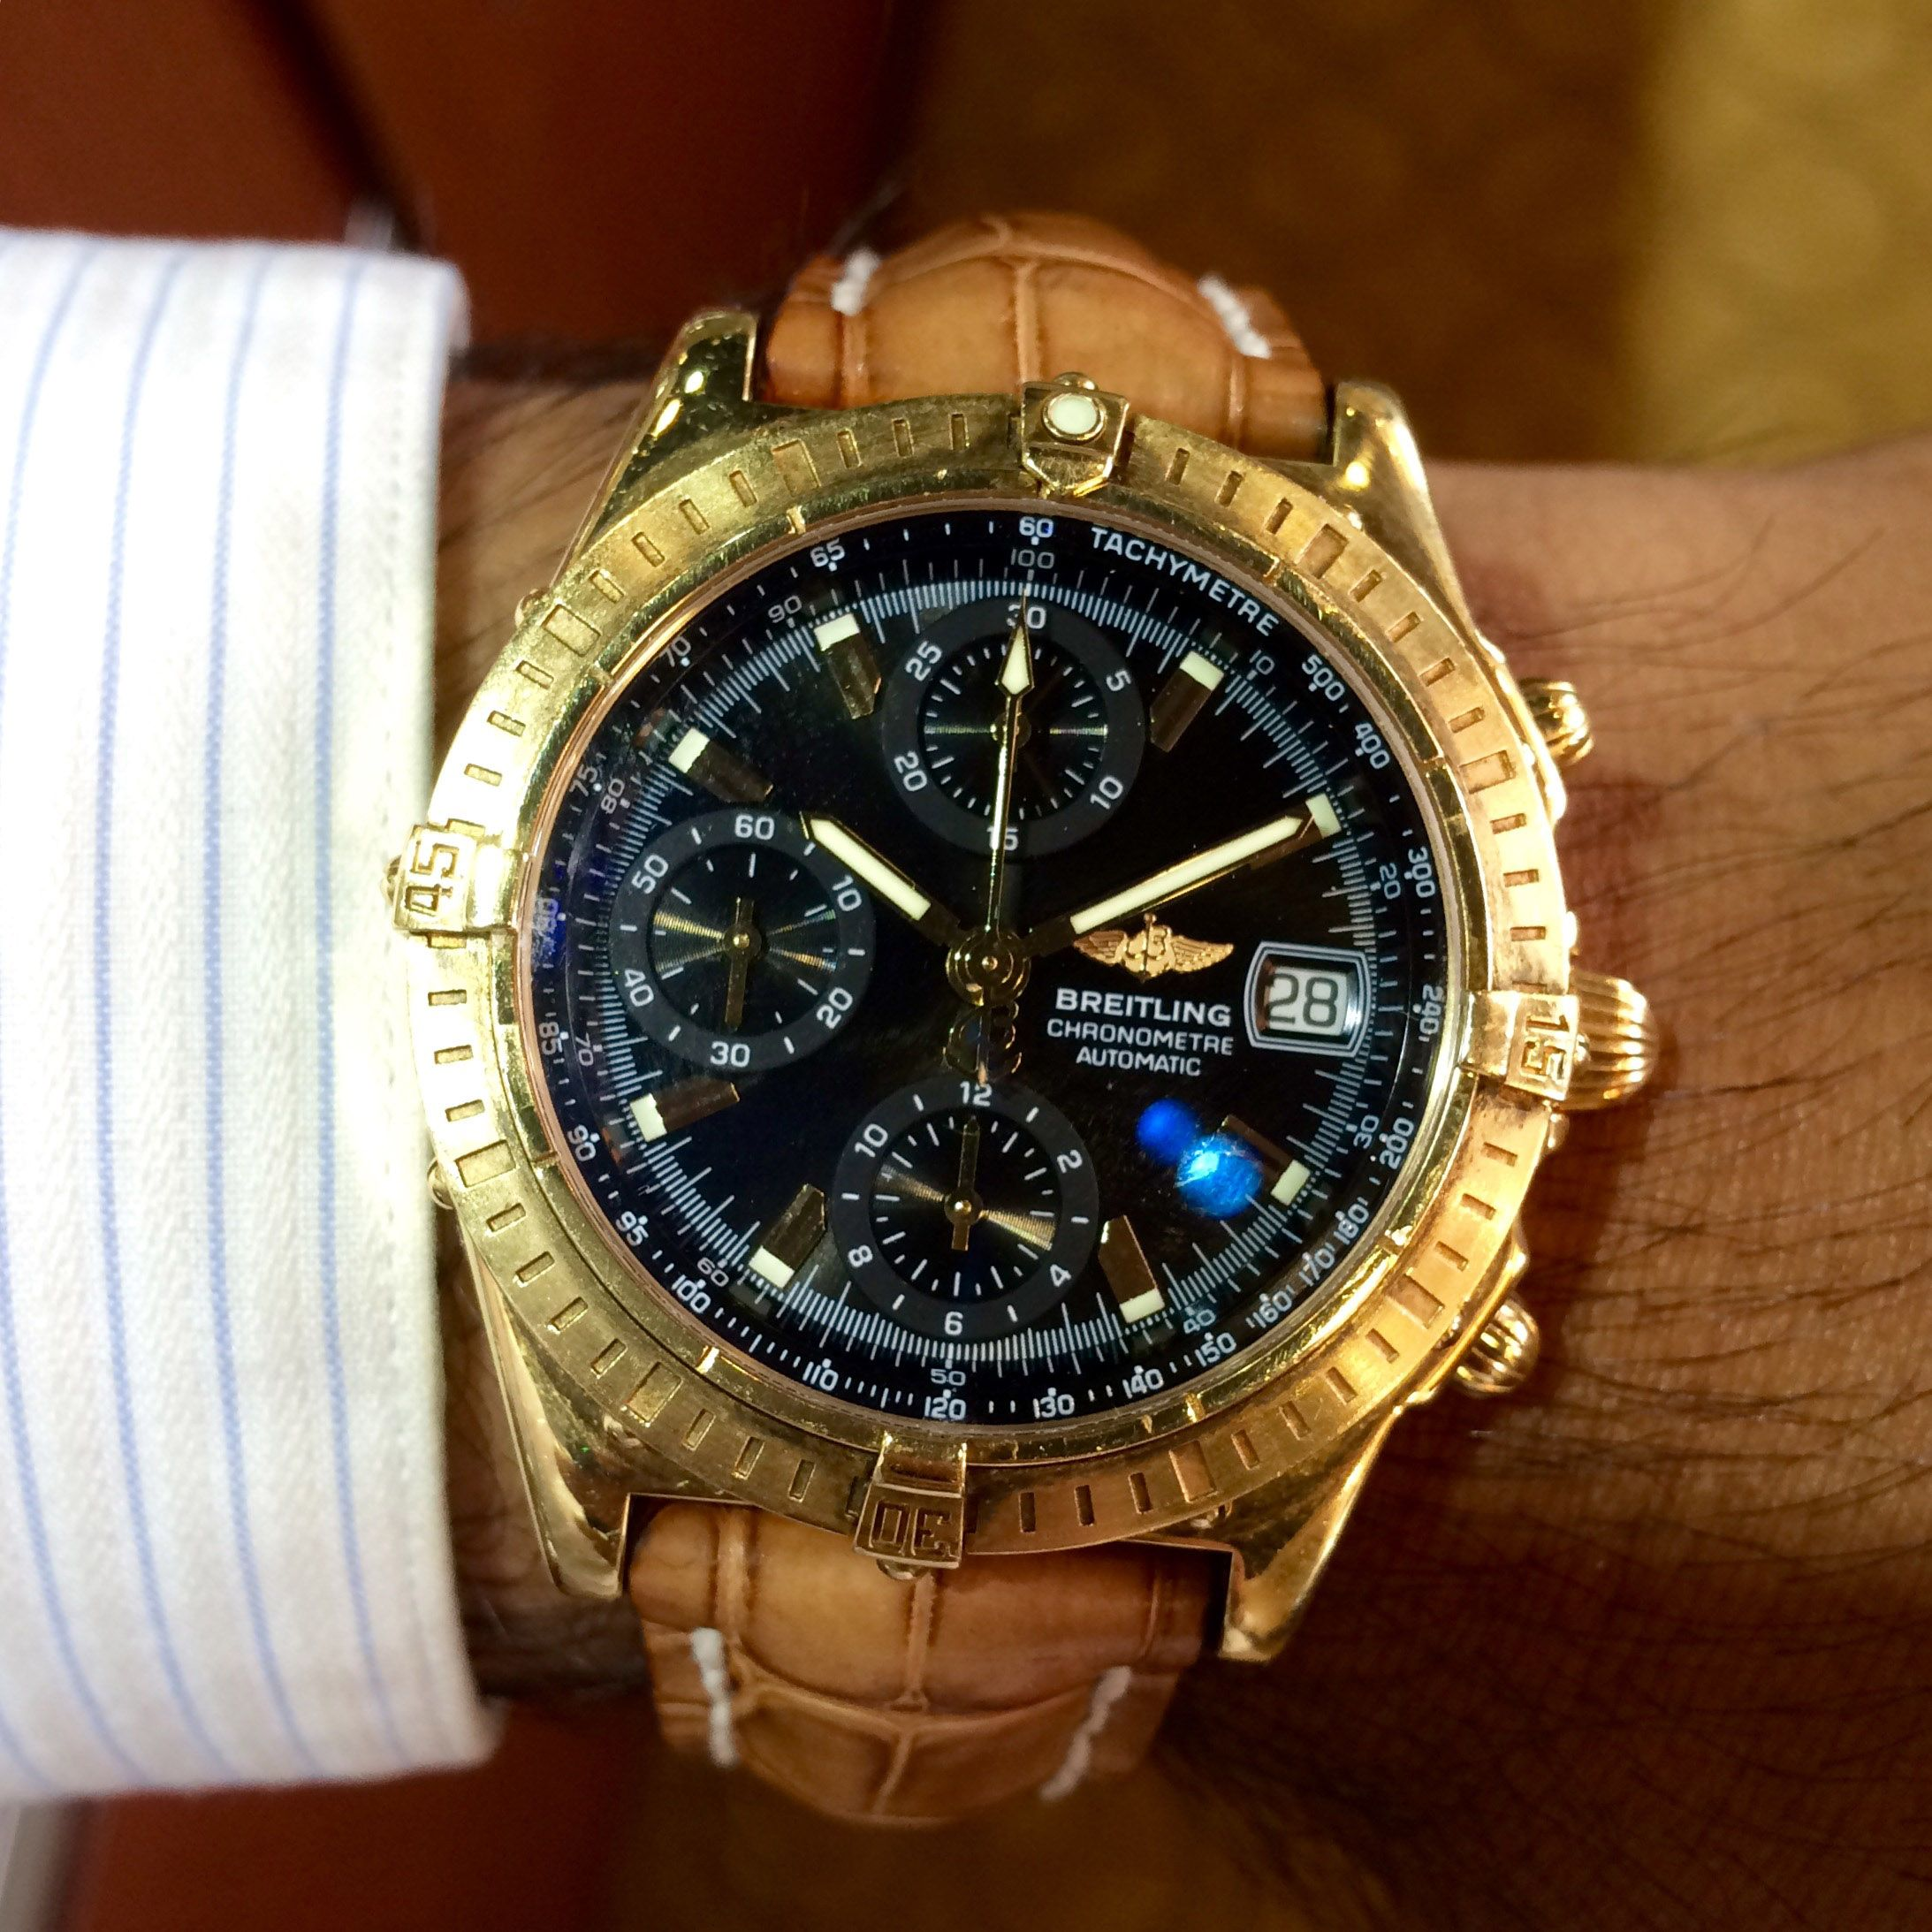 Home Breitling, Gold watch, Gold bentley